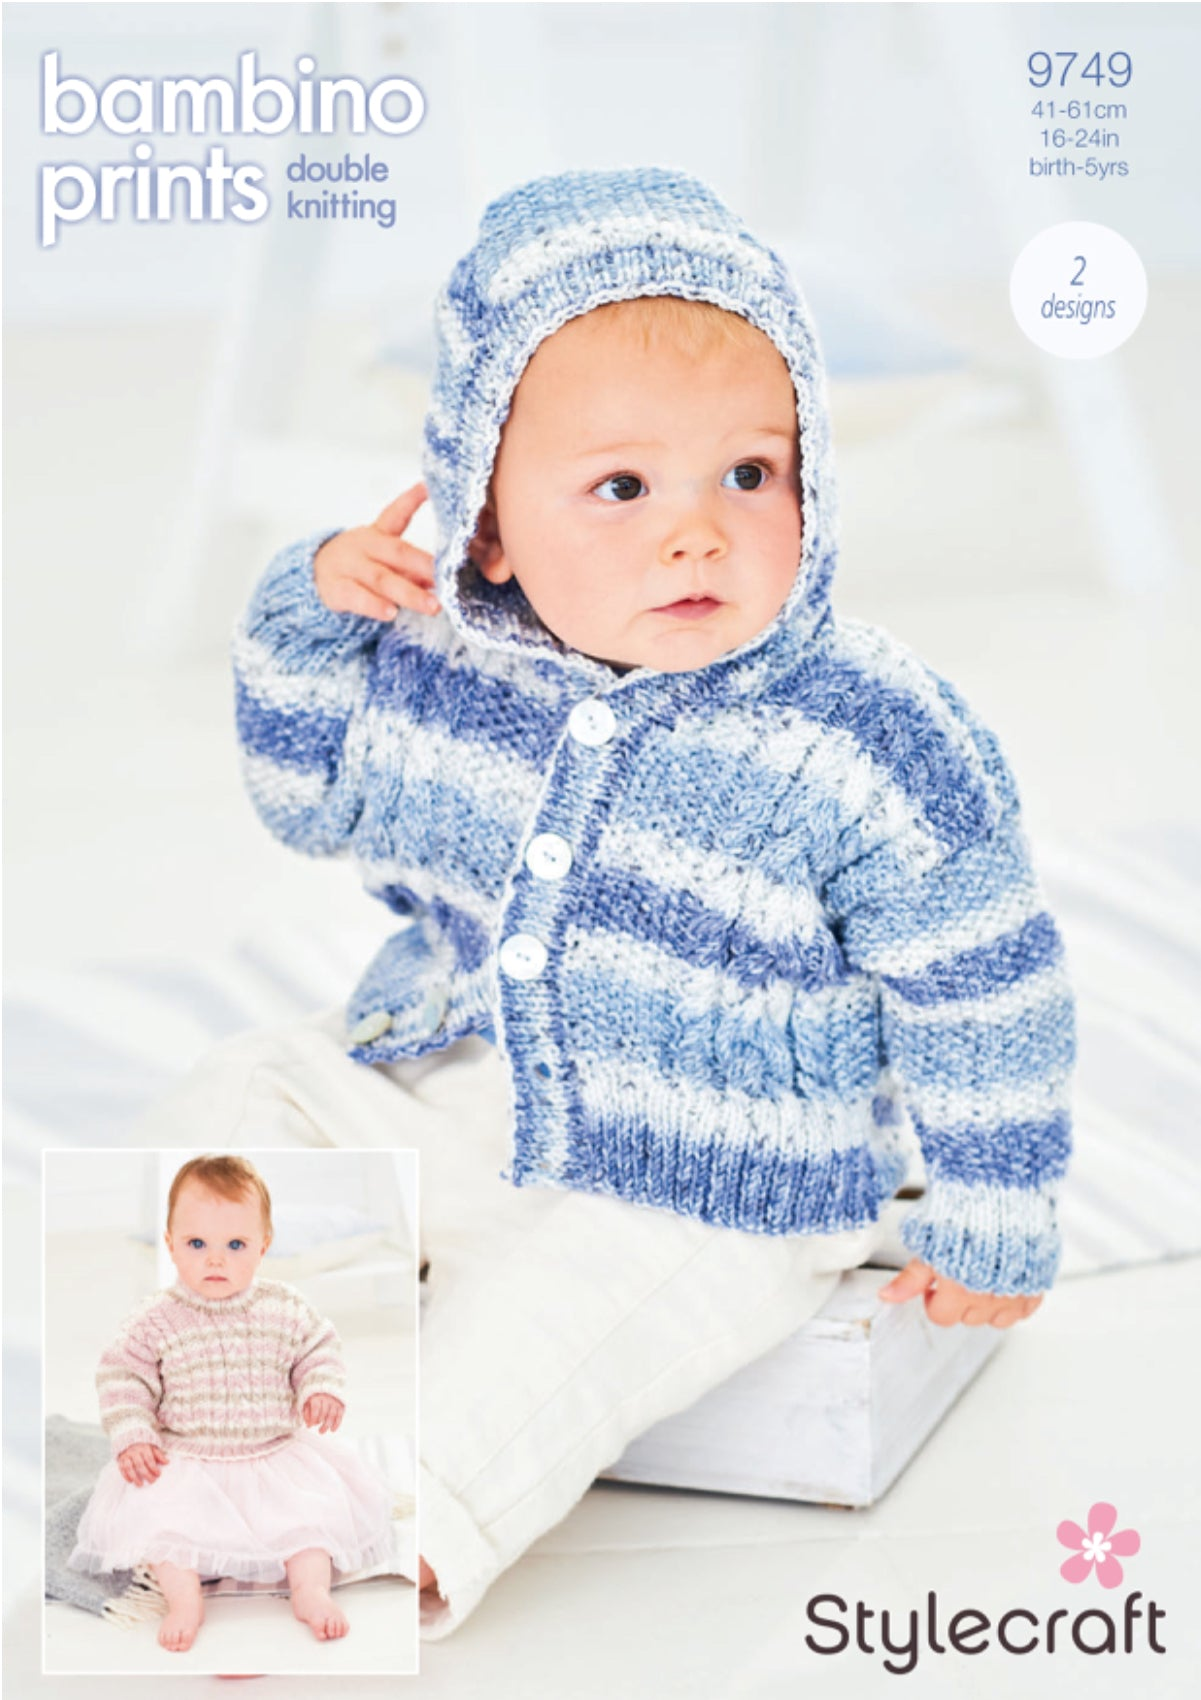 Stylecraft 9749 Jumper and Hoodie in Bambino Prints DK